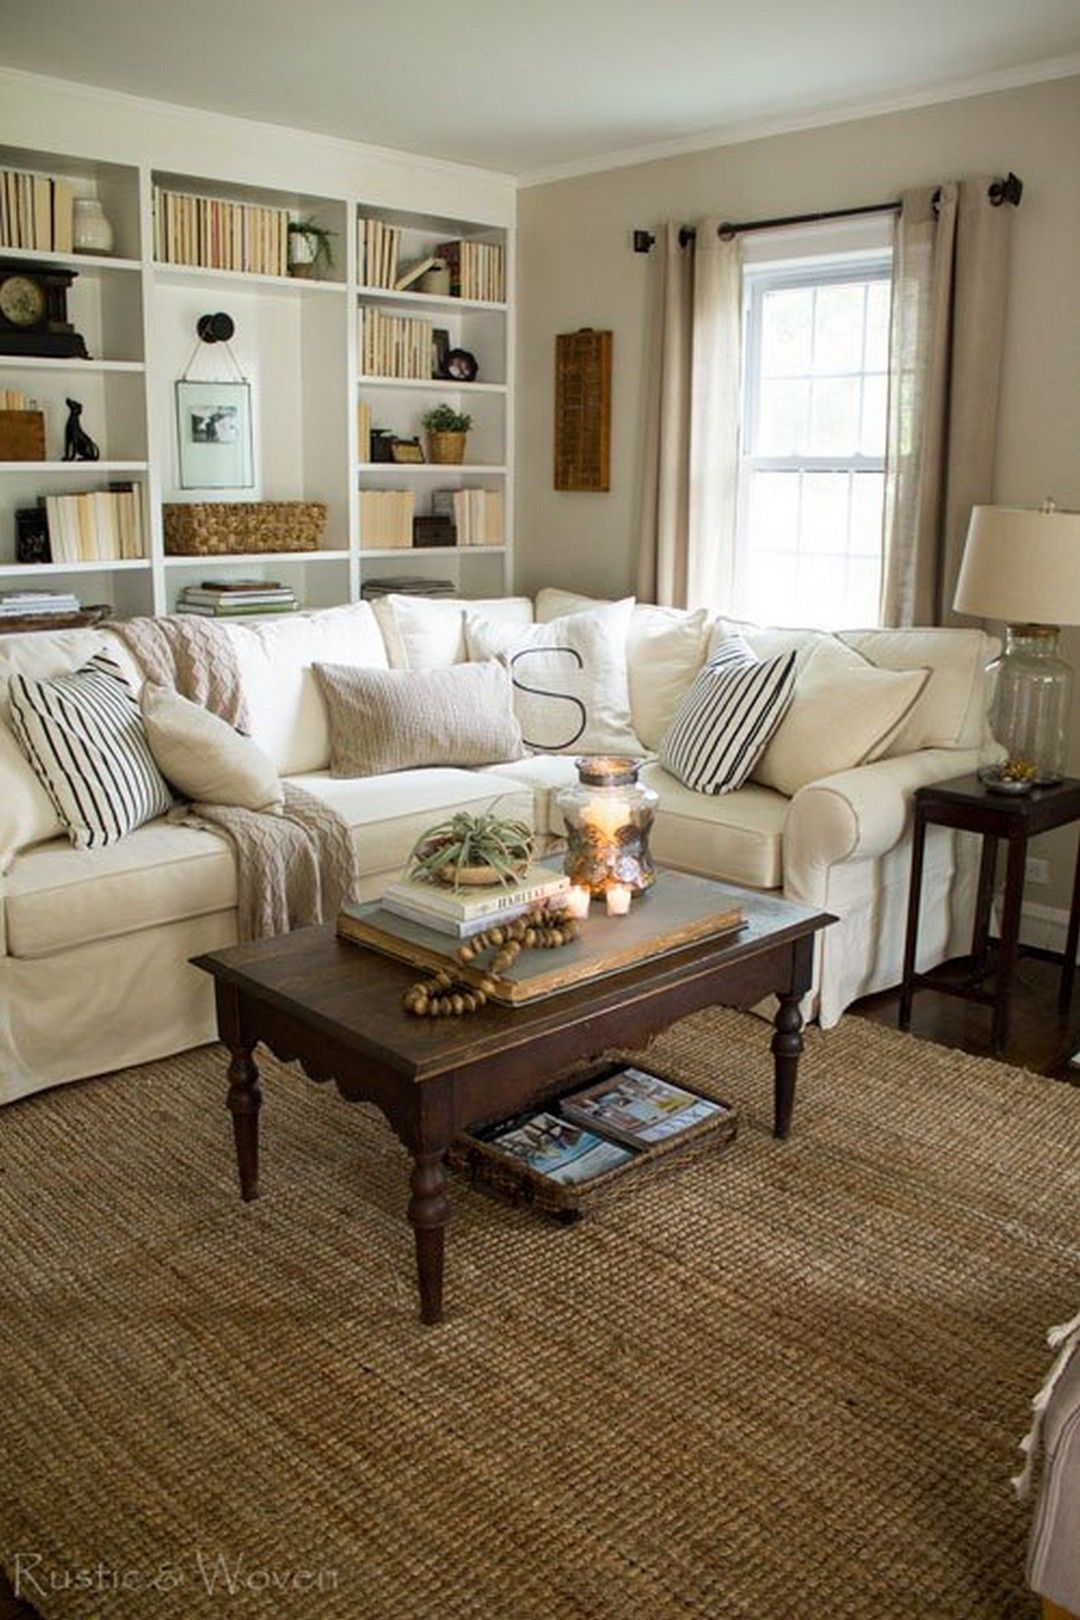 100 Cozy And Cool Cottage Style Interior Design Decorating Ideas Home Decor Ideas And Tips Country Living Room Design French Country Living Room Country Living Room